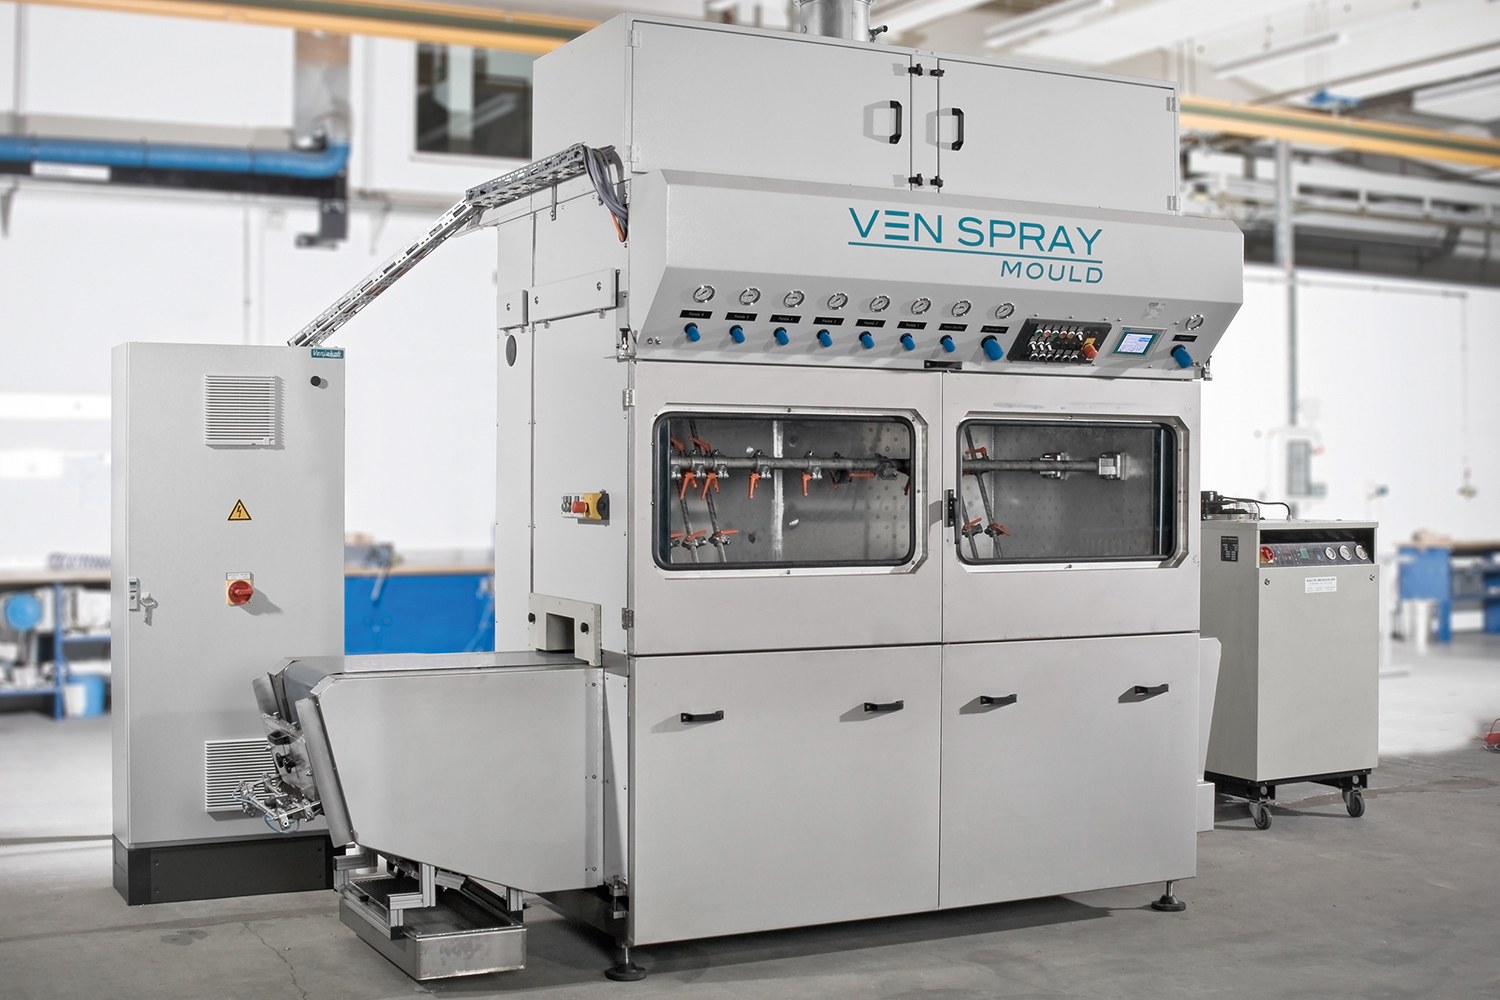 VEN SPRAY MOULD - the spray coating machine for mouldings and profiles